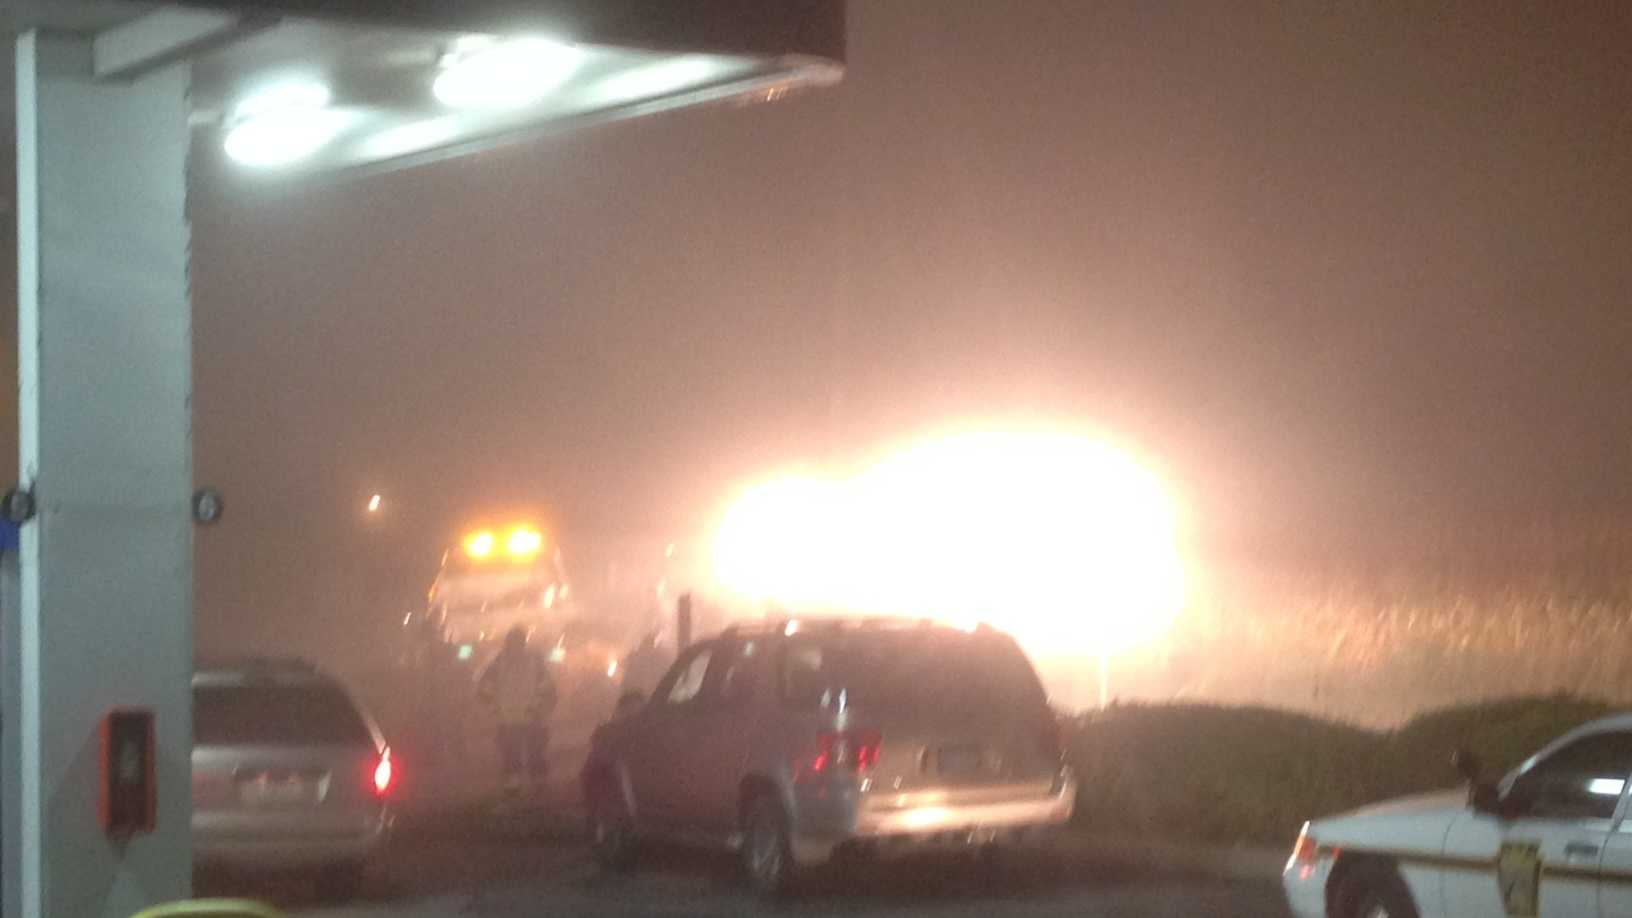 Emergency crew lights illuminate the crash scene on a foggy morning.